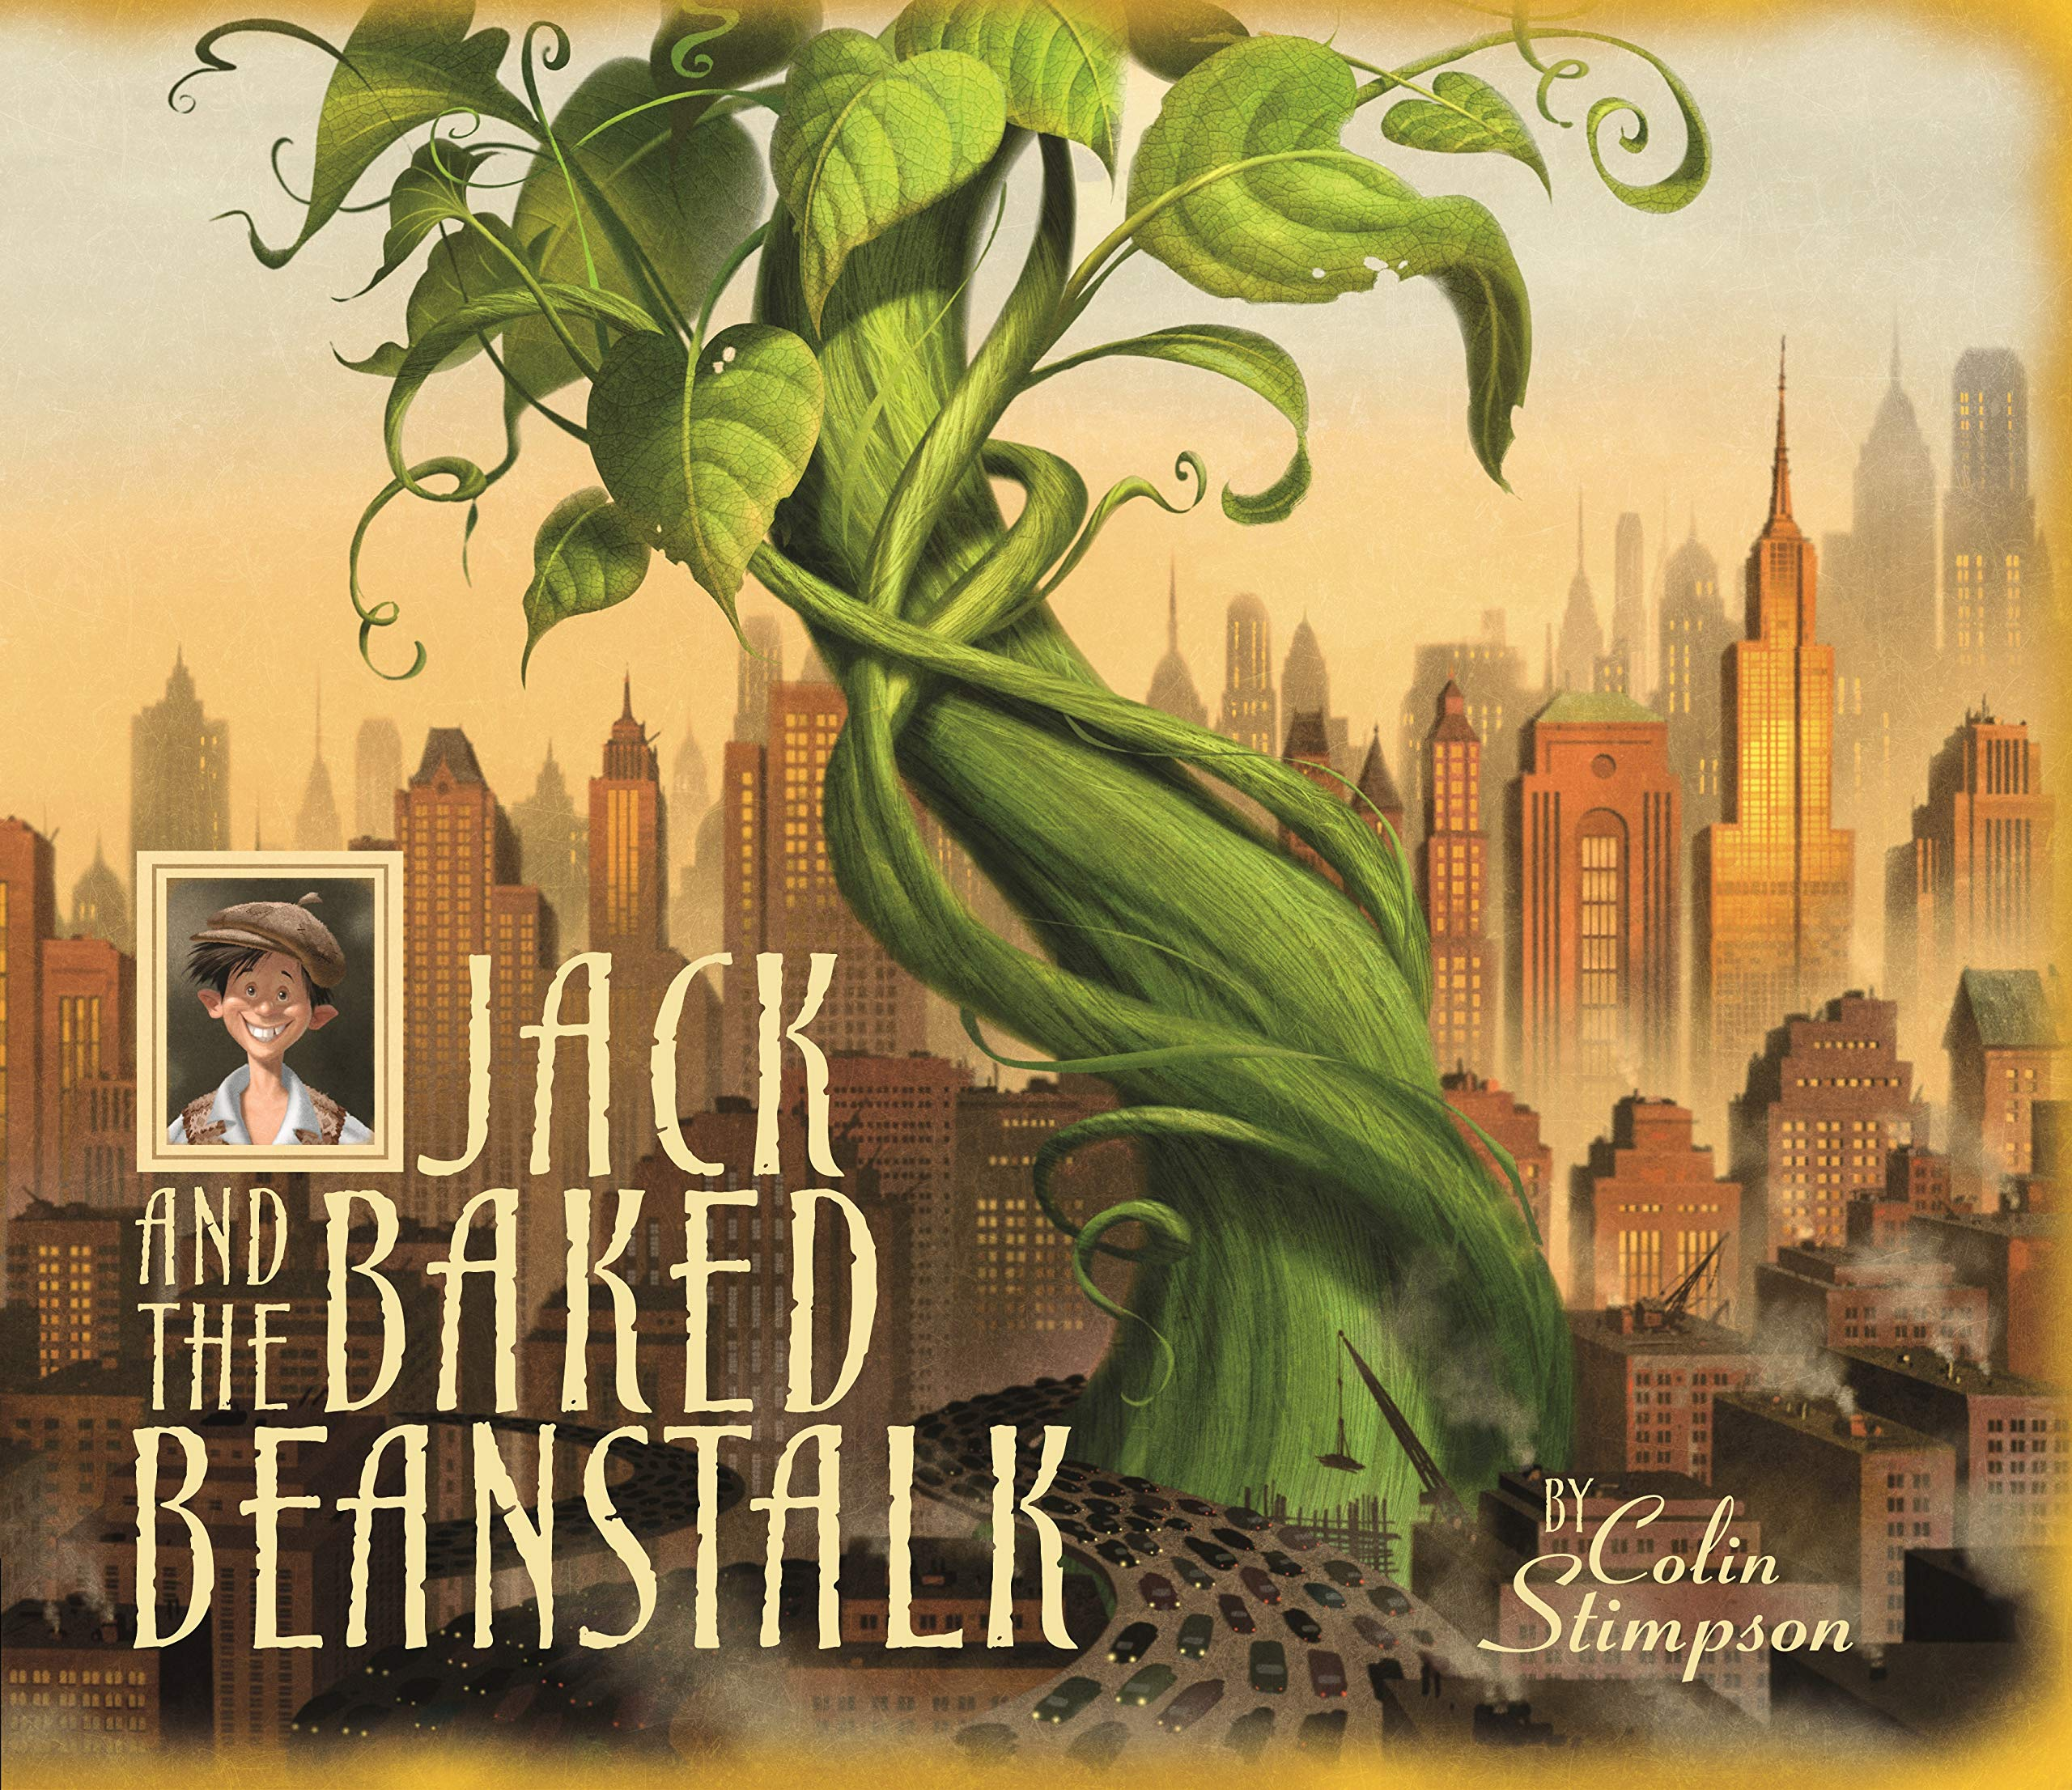 Jack and the Baked Beanstalk: Amazon.co.uk: Colin Stimpson: 9781848772373: Books